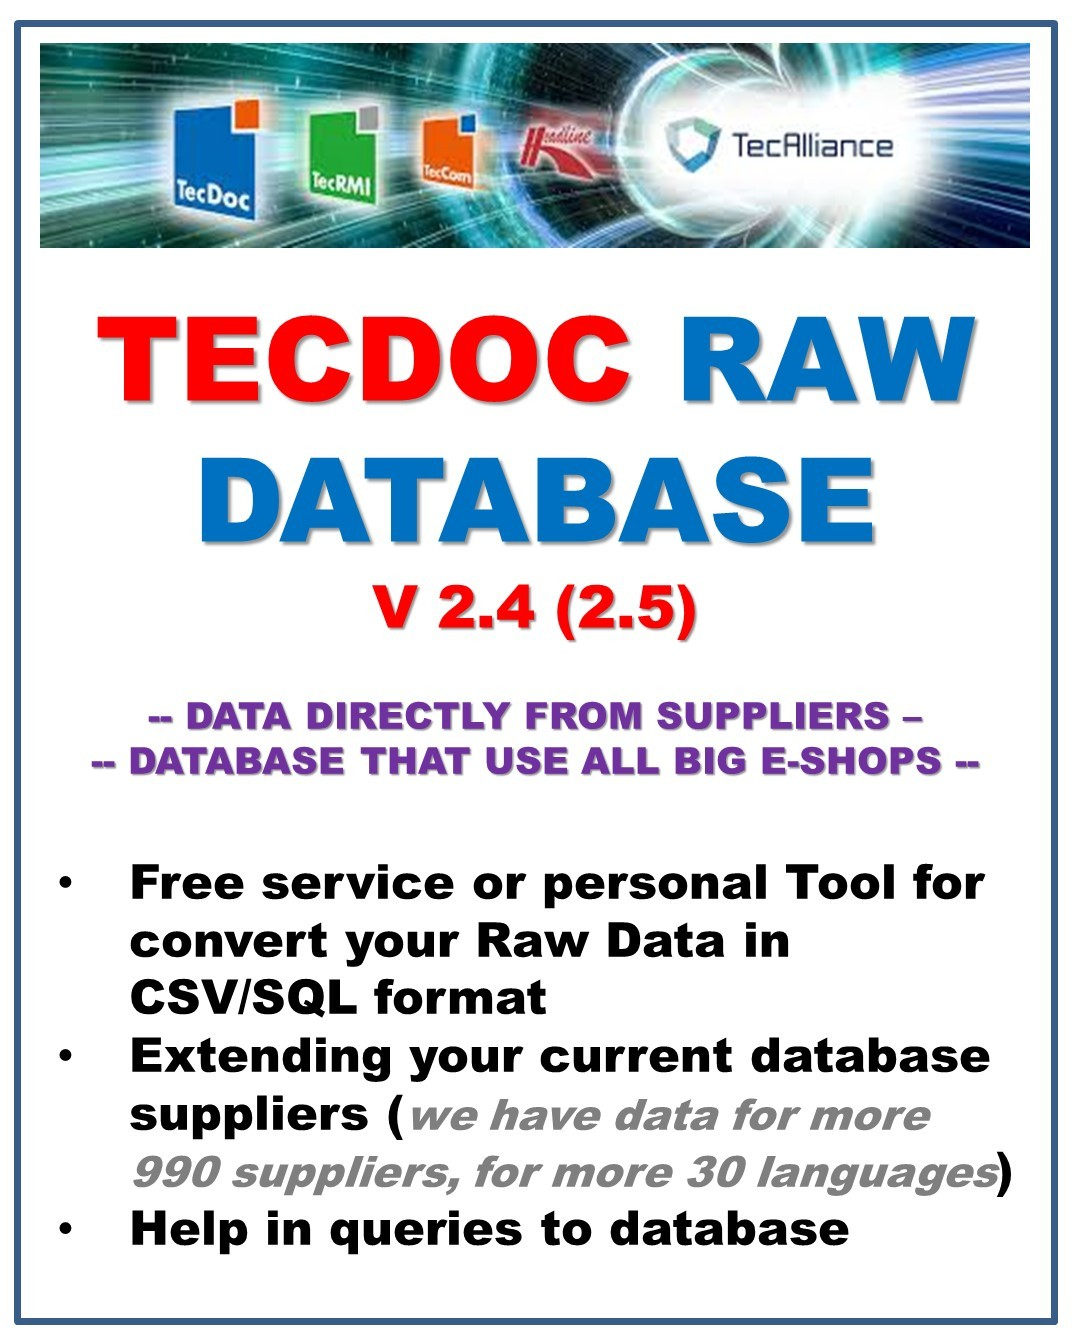 Tecdoc TAF Raw database